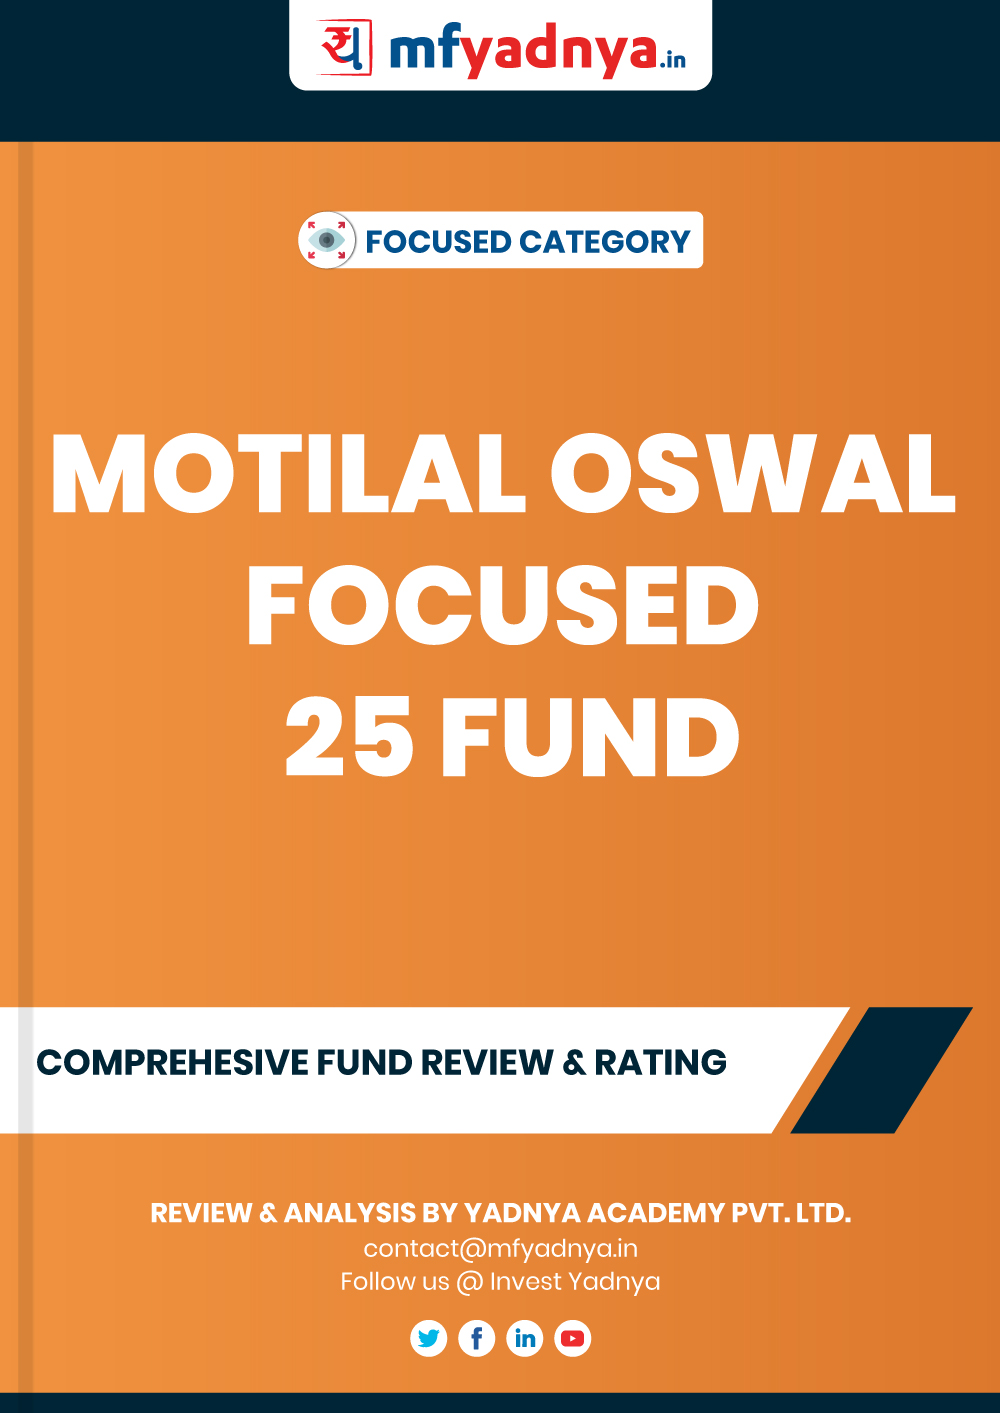 Focused Category Review -Motilal Oswal Focused 25 Fund. Most Comprehensive and detailed MF review based on Yadnya's proprietary methodology of Green, Yellow & Red Star. Detailed Analysis & Review based on May 31st, 2020 data. Review also gives you the historical trend of the performance which will show fund's performance consistency.